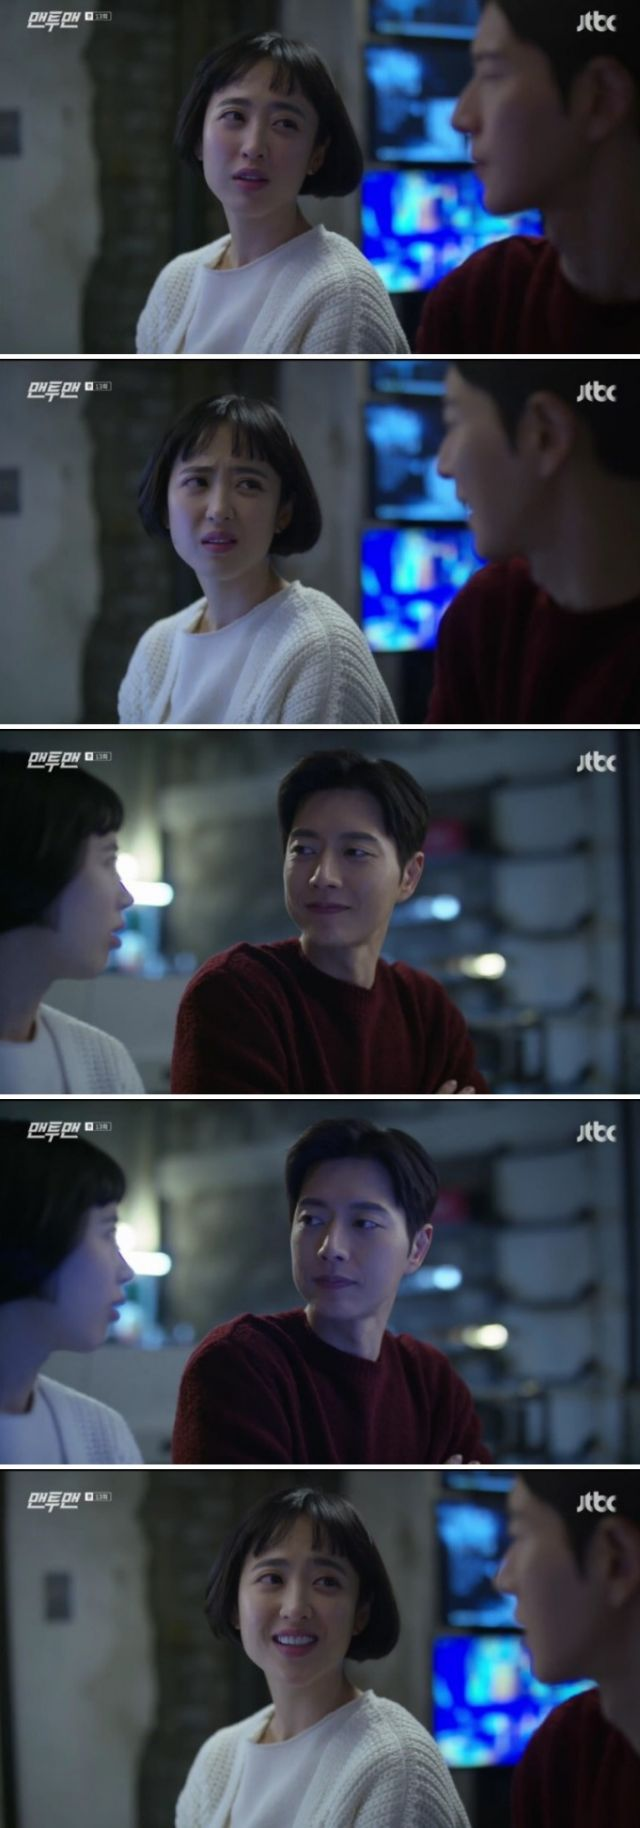 [Spoiler] Added episodes 13 and 14 captures for the Korean drama 'Man to Man'